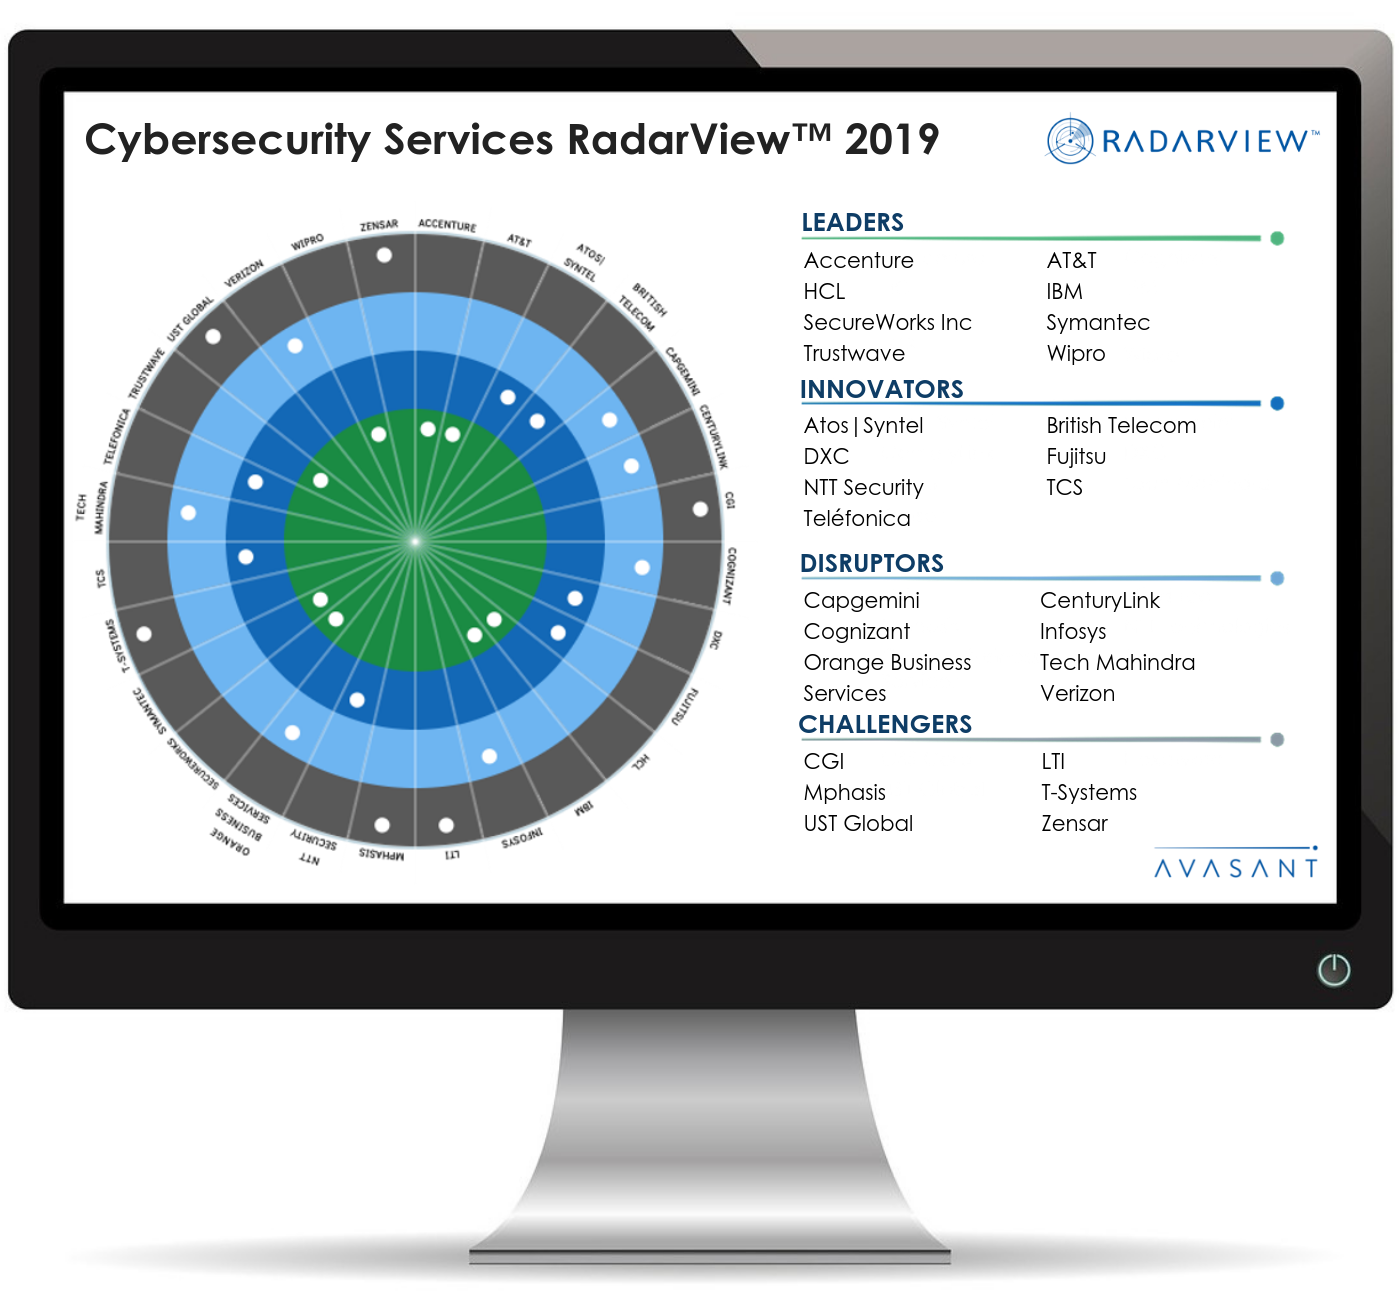 Copy of Copy of Ai and Applied Analytics full 2 - Cybersecurity Services 2019 Accenture RadarView™ Profile